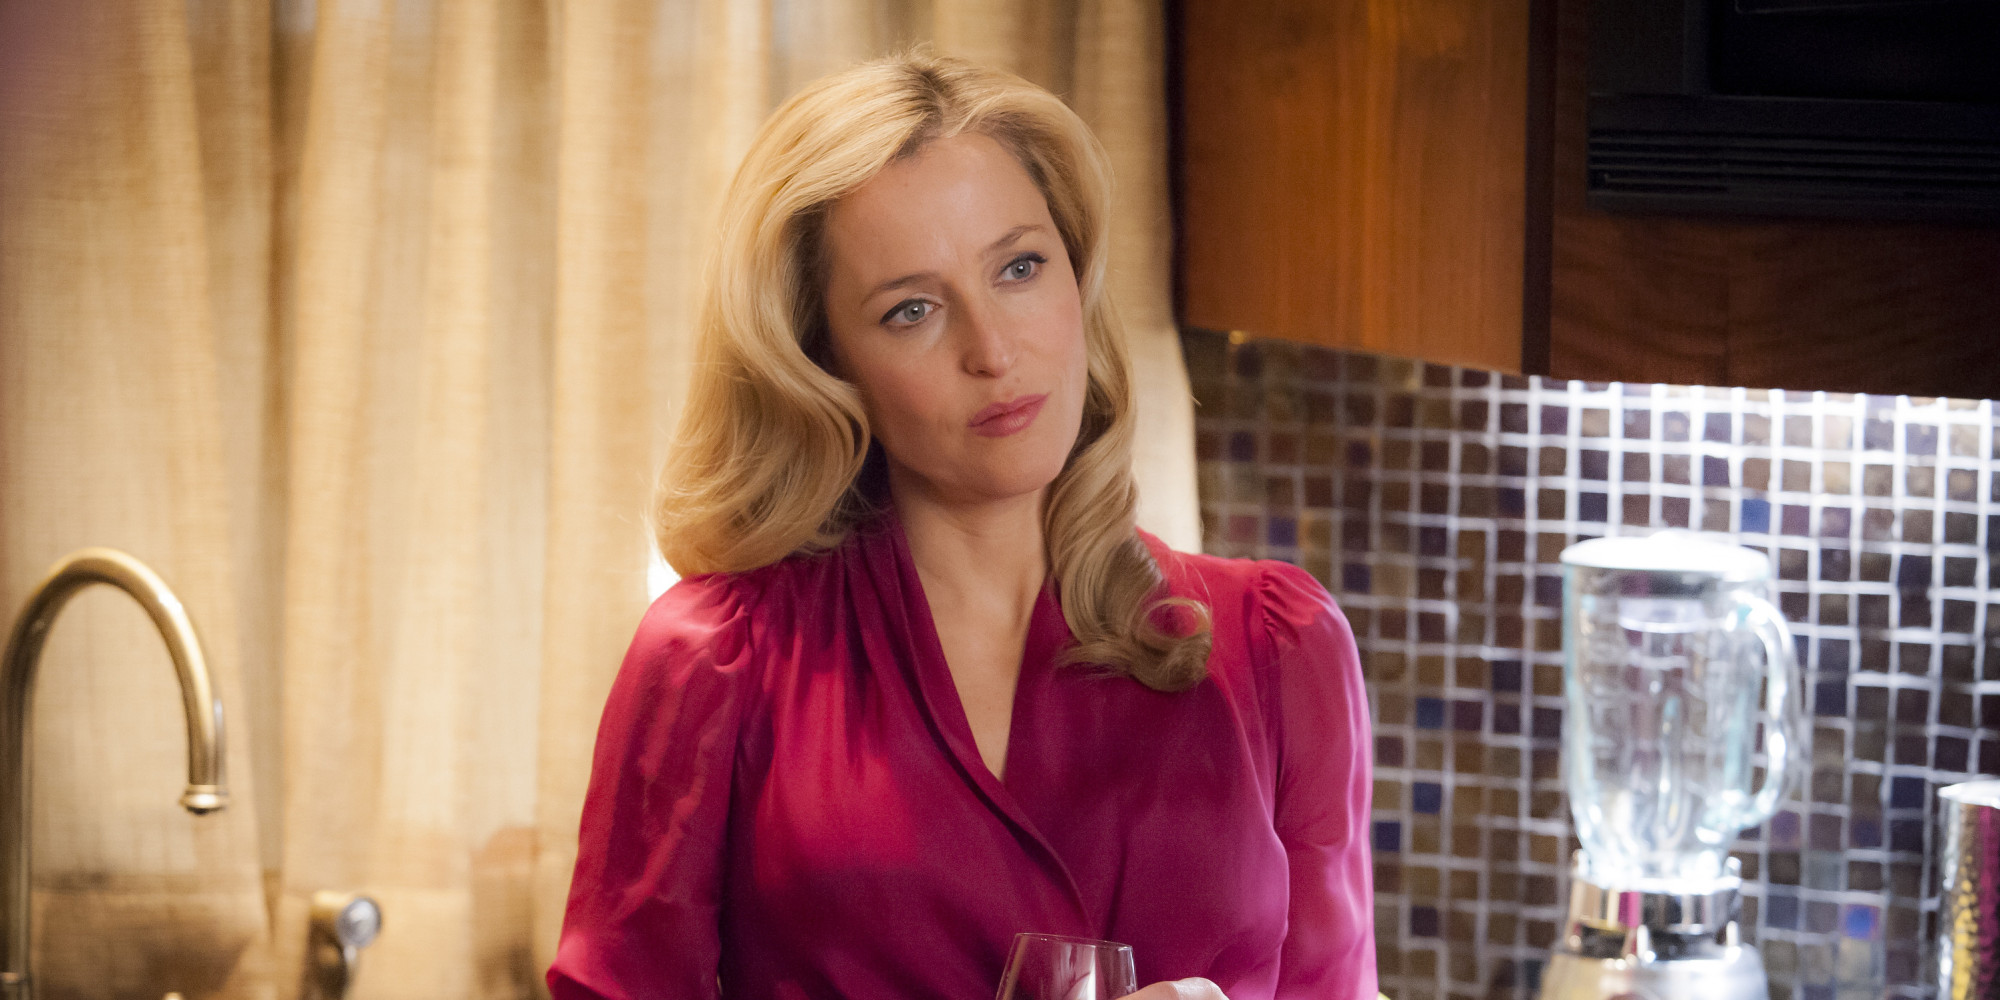 Gillian Anderson cast as former British Prime Minister